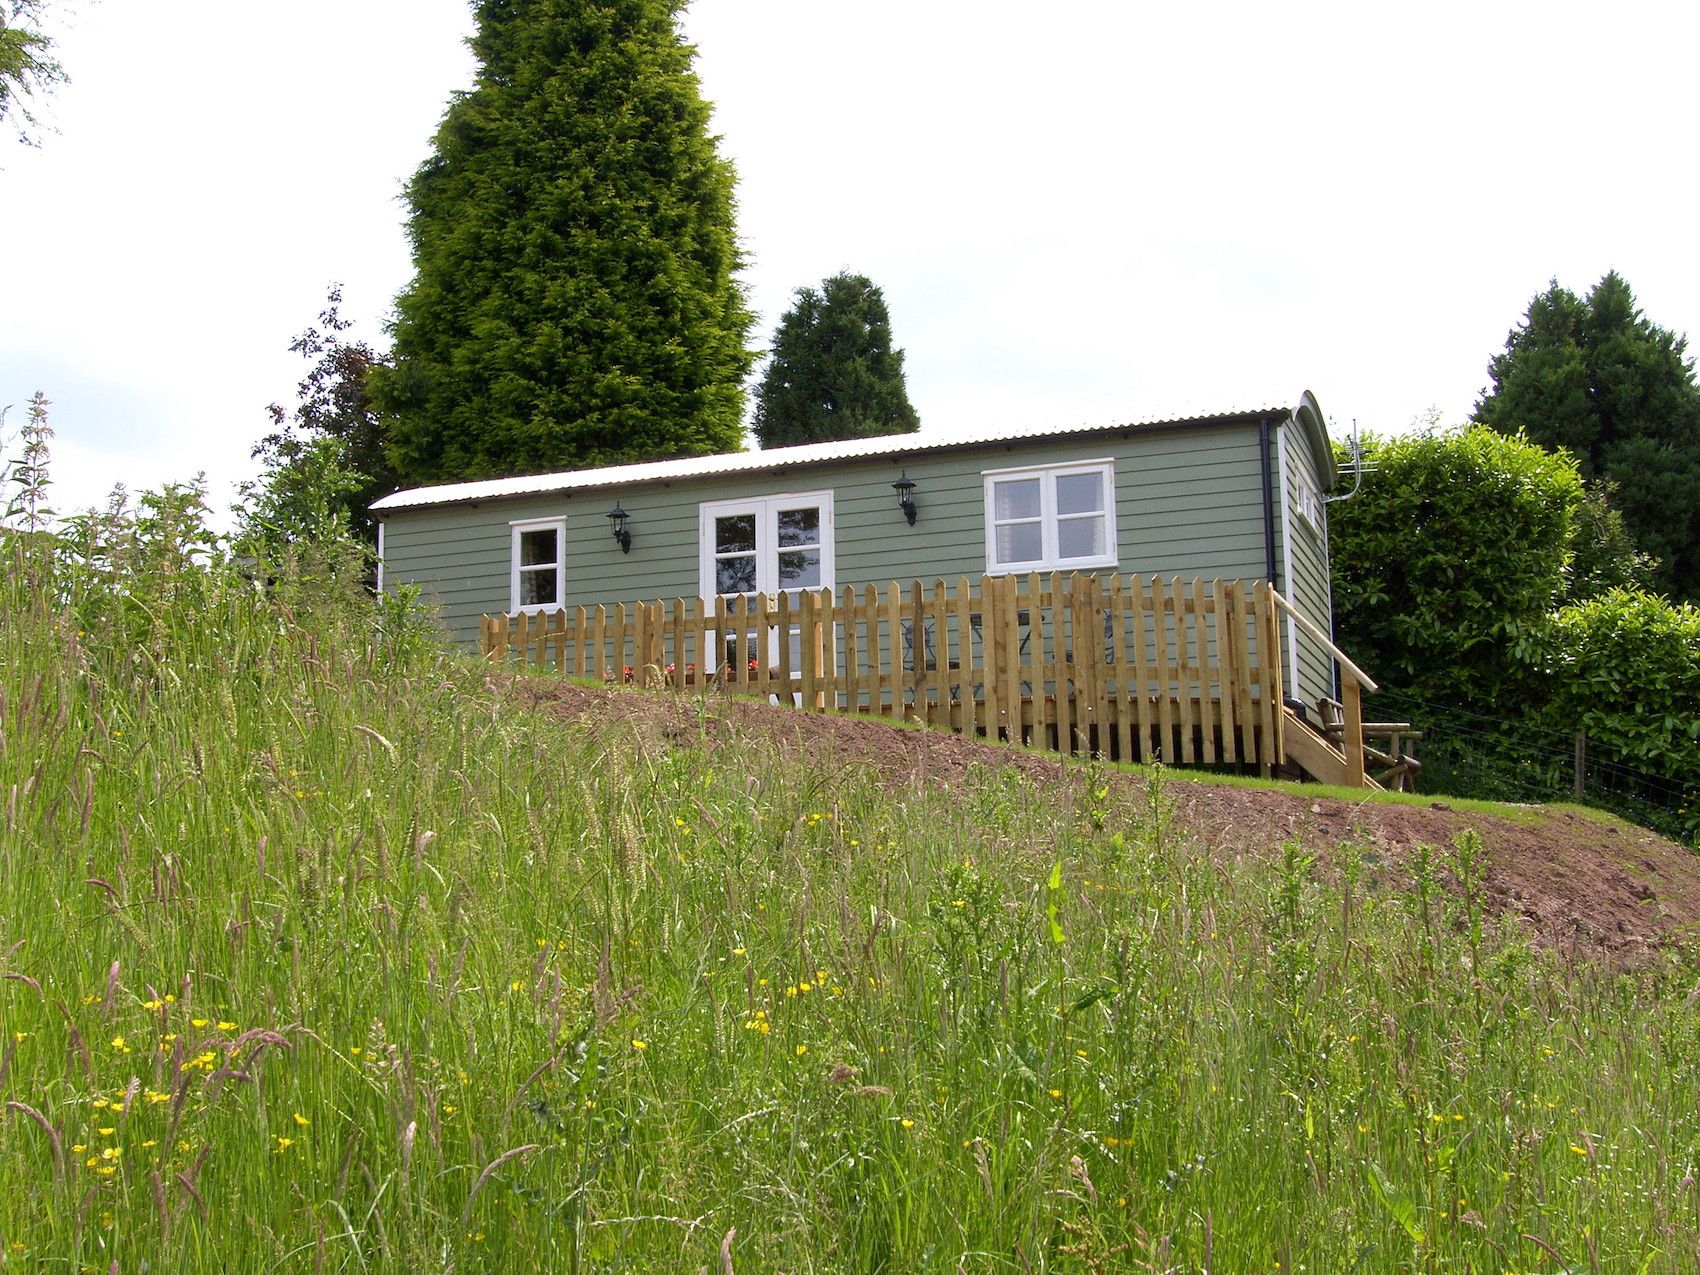 Shepherd's hut glamping and an isolated, pond-side cabin retreat on a working beef farm in the heart of the Shropshire countryside.